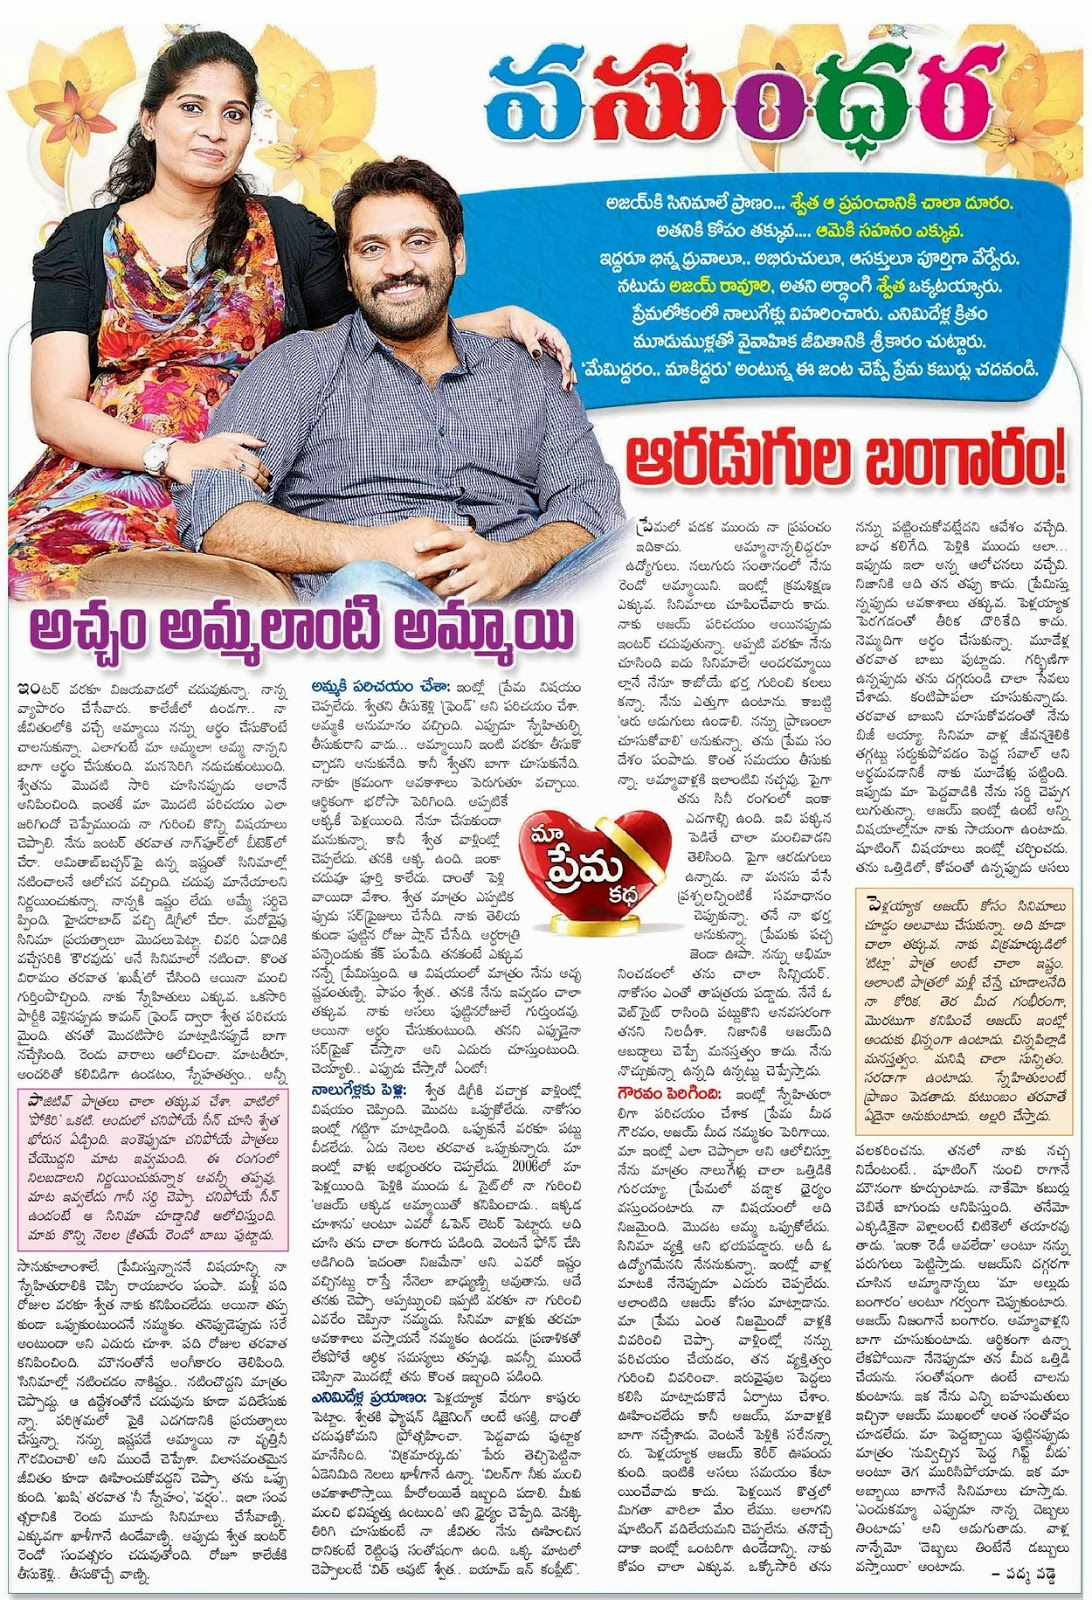 Actor aajay with wife swetha interview in eenadu vasundhara actor aajay with wife swetha interview in eenadu vasundhara kothacinema altavistaventures Gallery